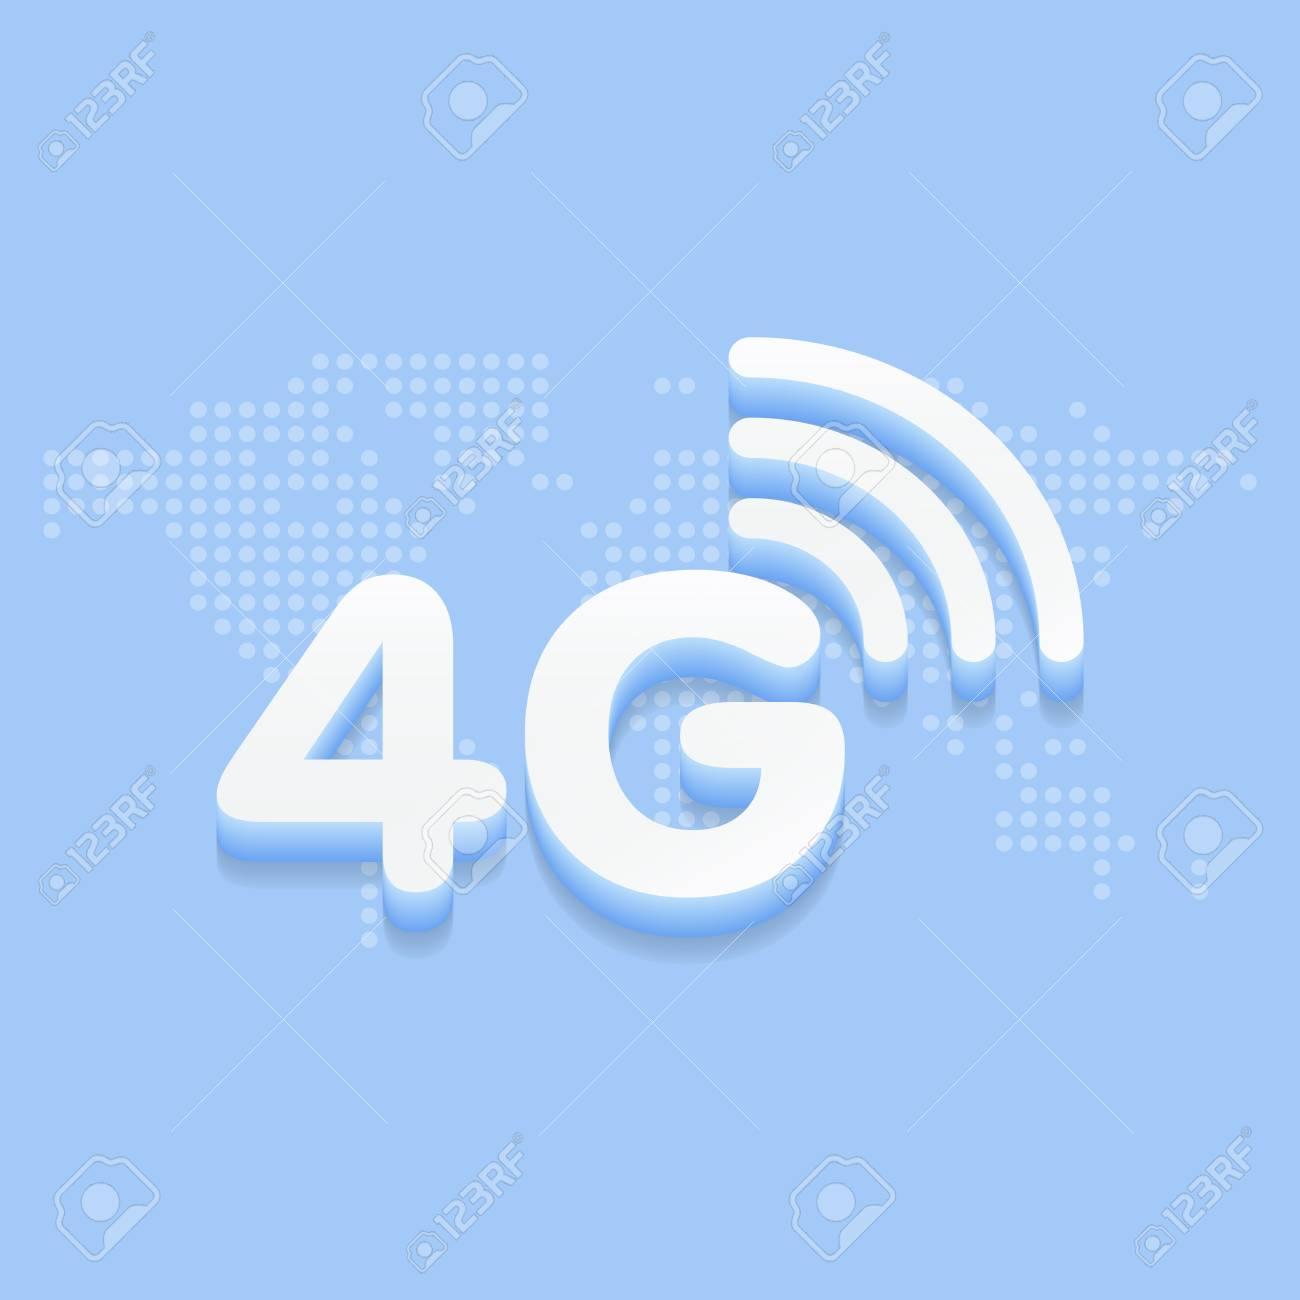 4g fast internet 3d sign in blue background and dotted world 4g fast internet 3d sign in blue background and dotted world map vector illustration stock sciox Choice Image